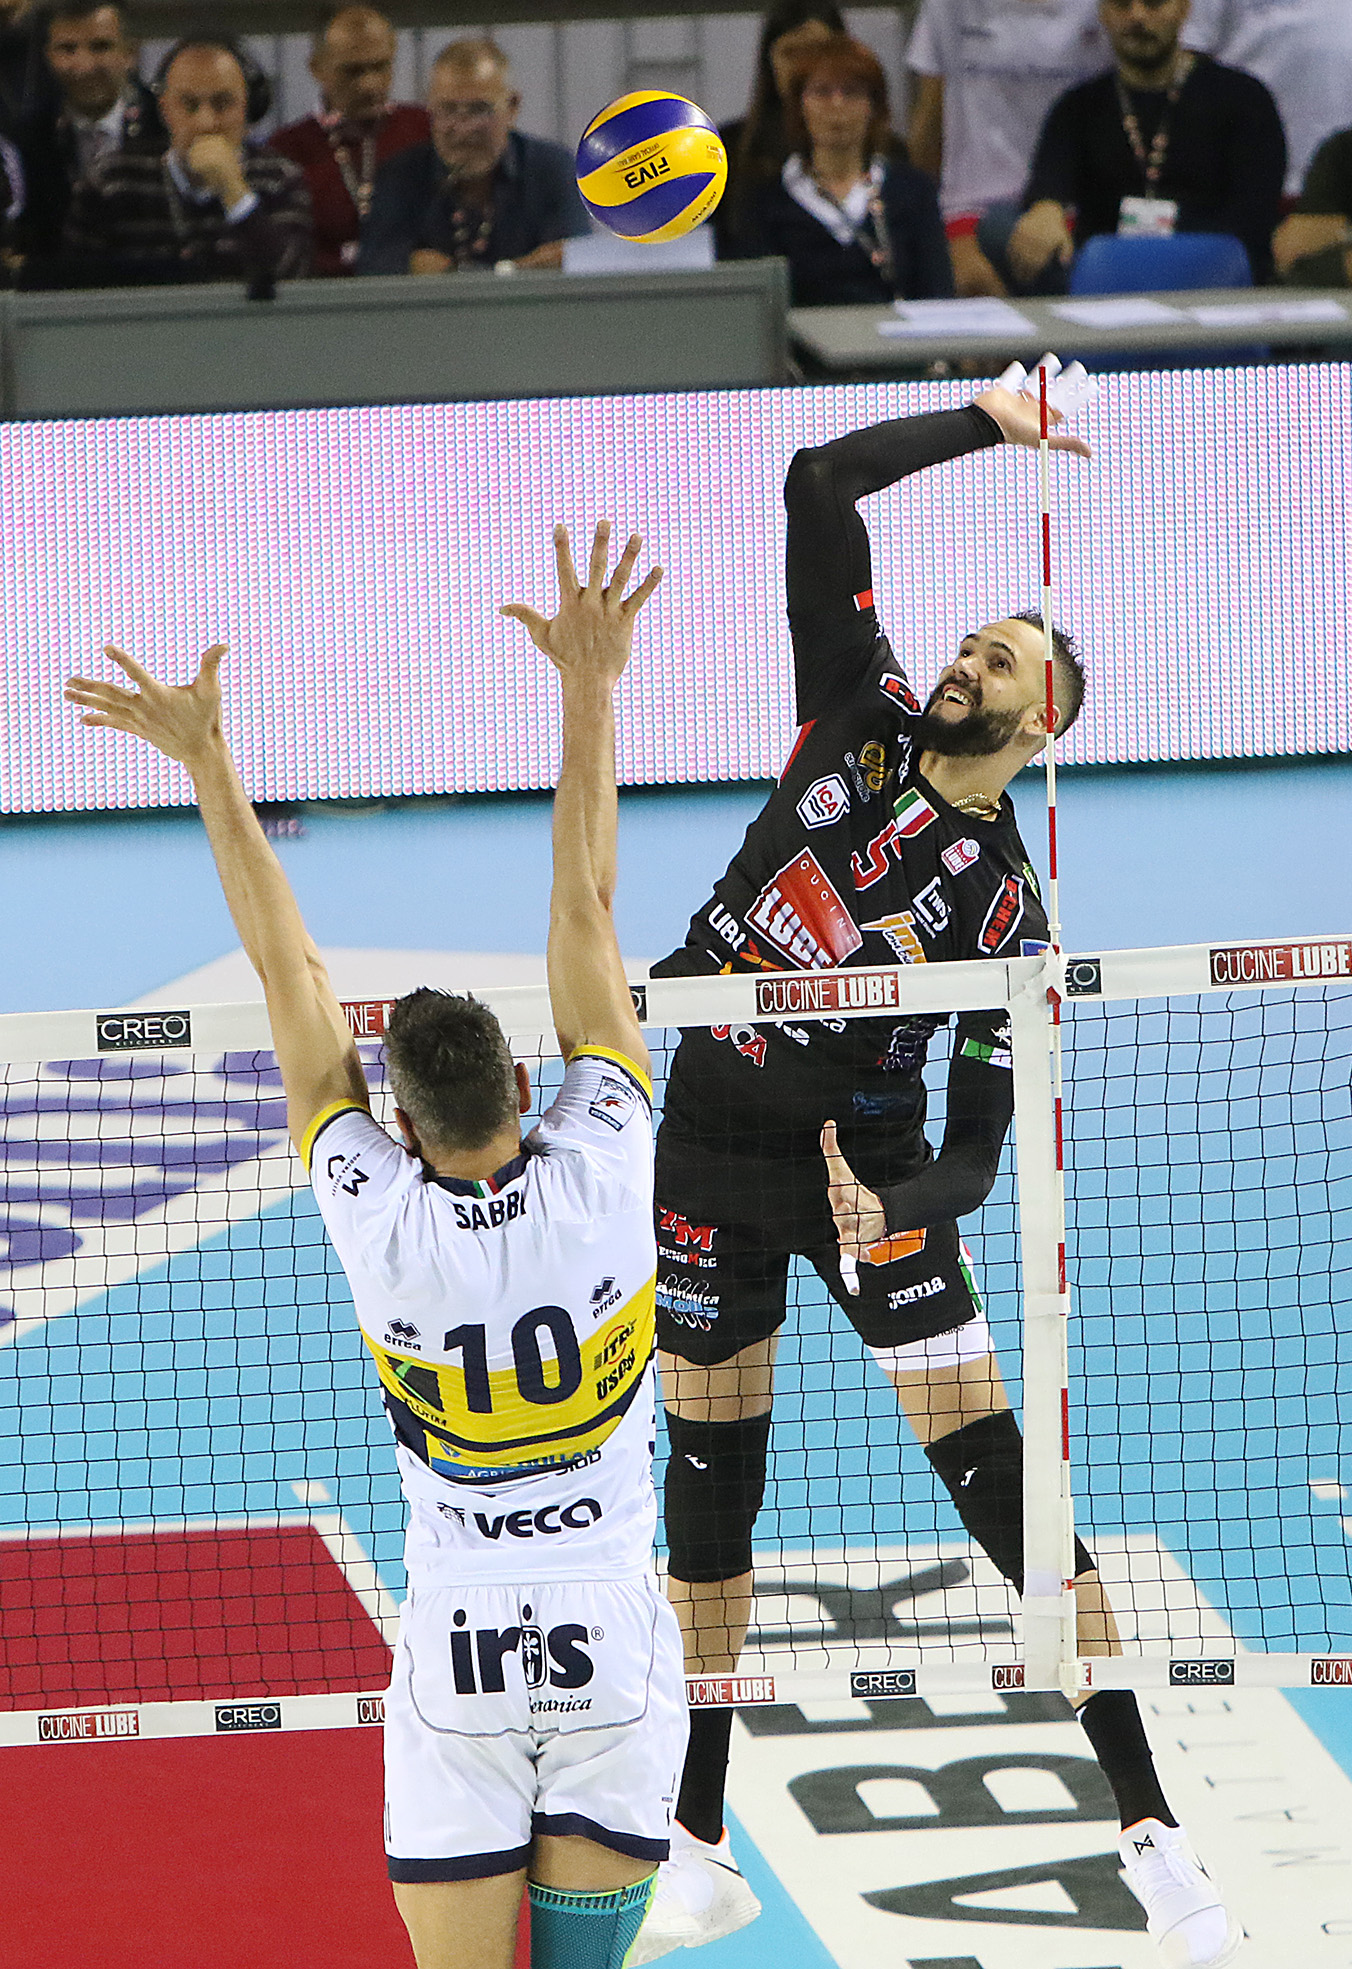 Ph. Legavolley.it